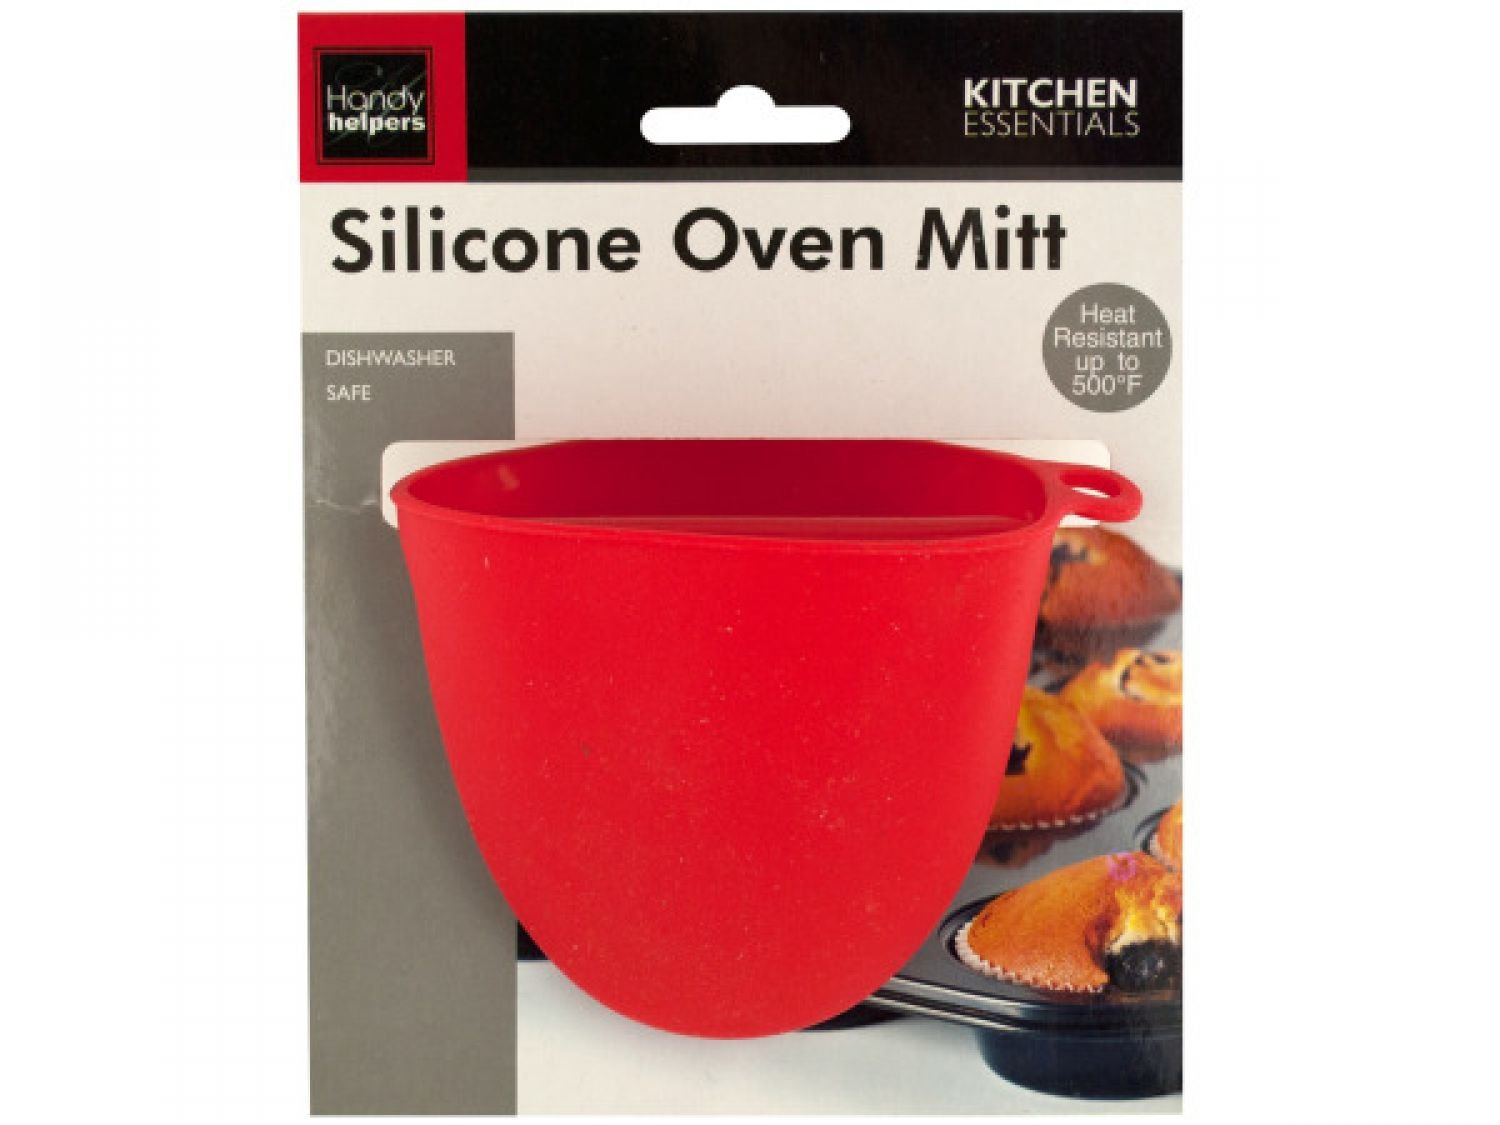 Silicone Oven Mitt - 72 Pack